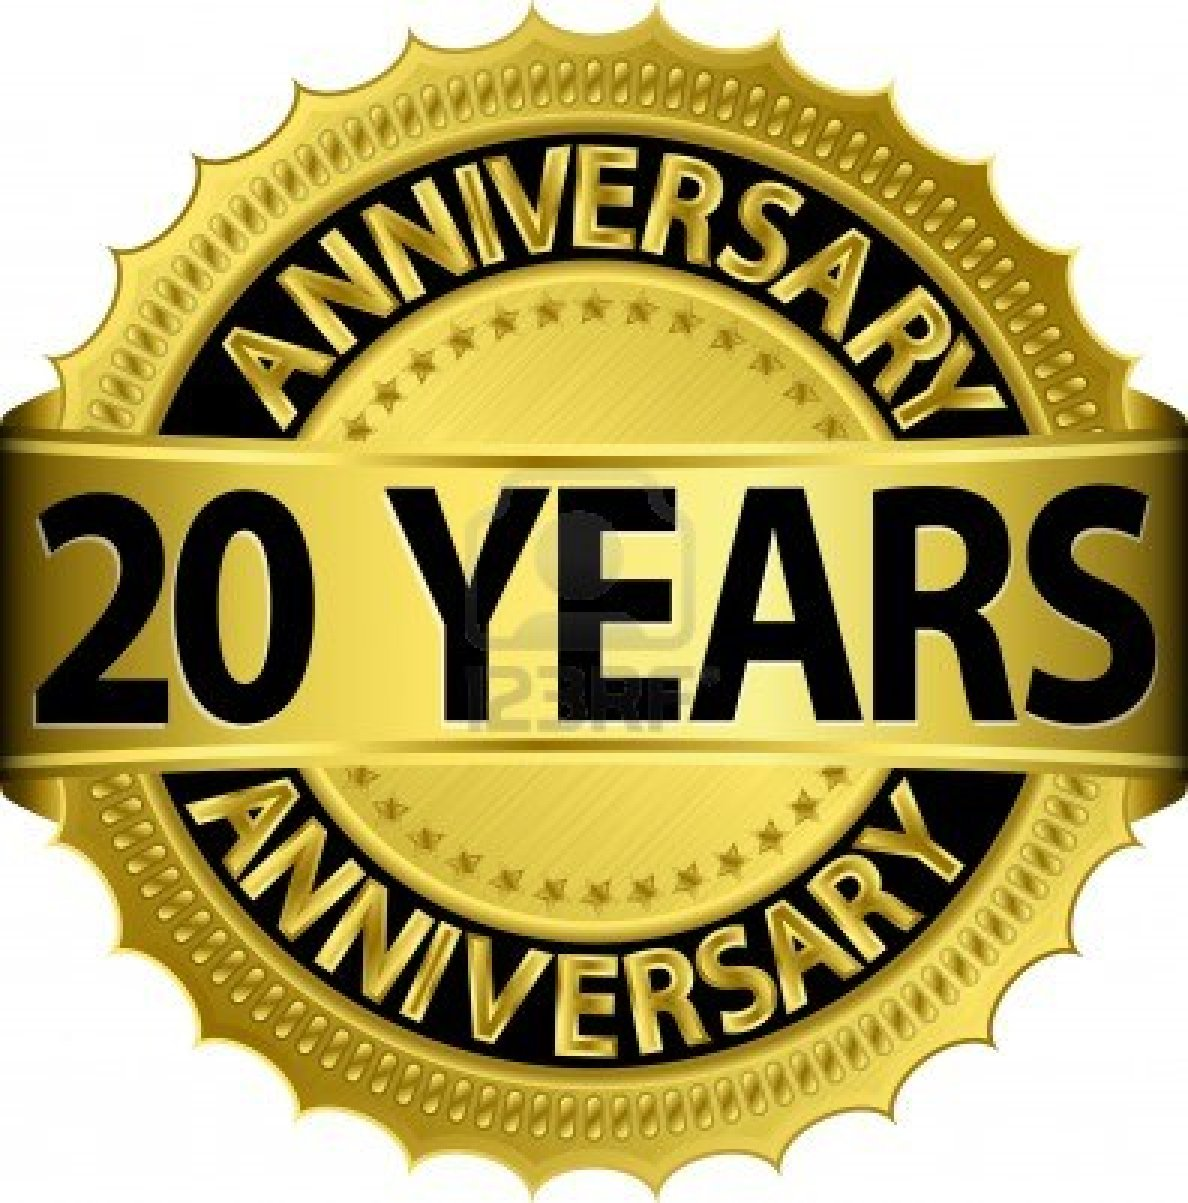 20 years of service clipart jpg Free Milestone Anniversary Cliparts, Download Free Clip Art, Free ... jpg